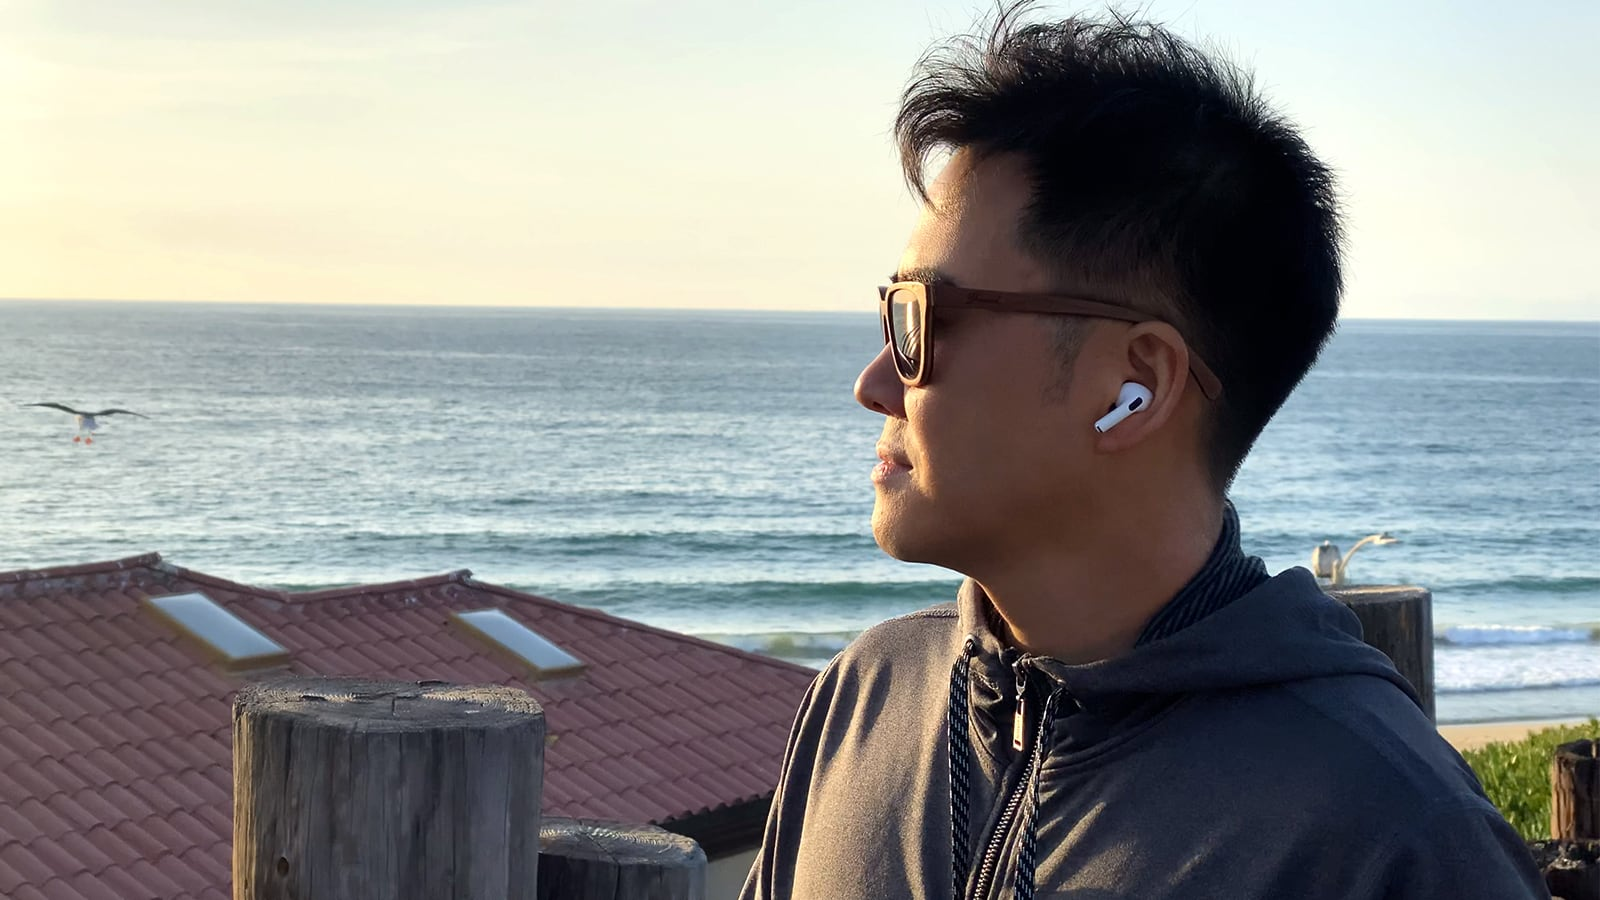 AirFoams Pro Memory Foam AirPods Pro Ear Tips are more comfortable than silicone tips